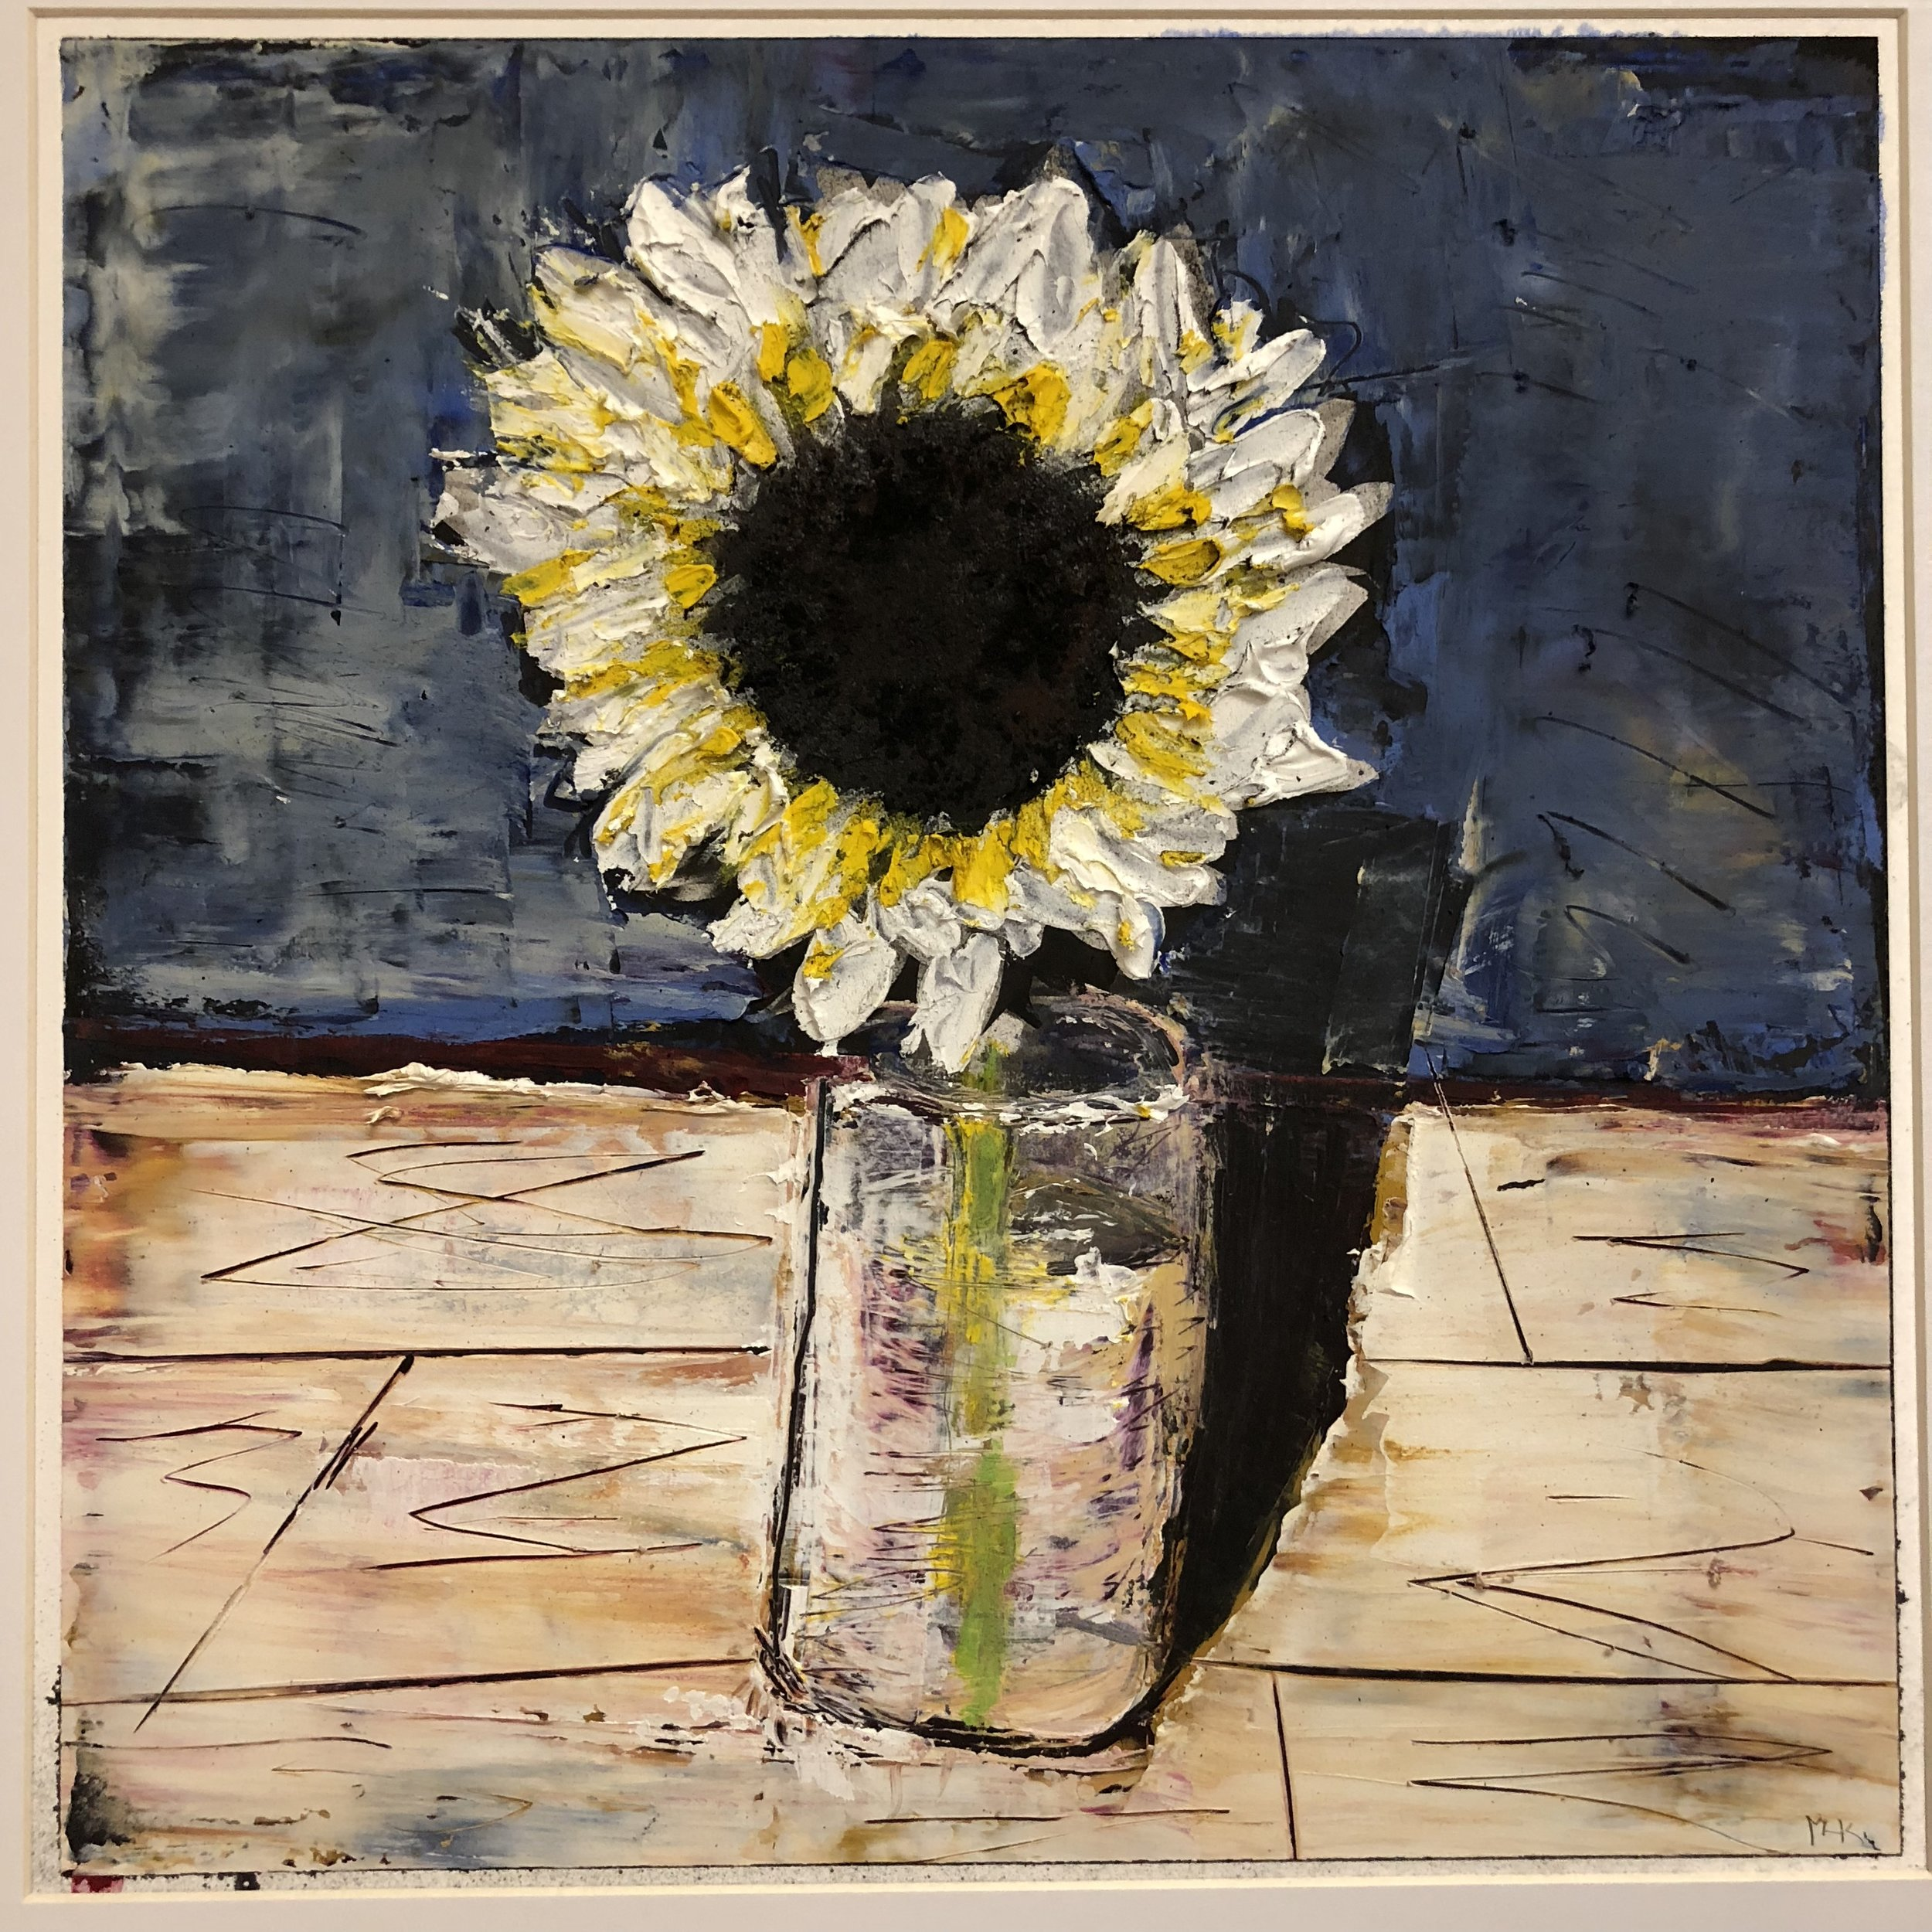 sunflower #2; charcoal, graphite, oil/cold wax medium over archival pigment print (12x12)